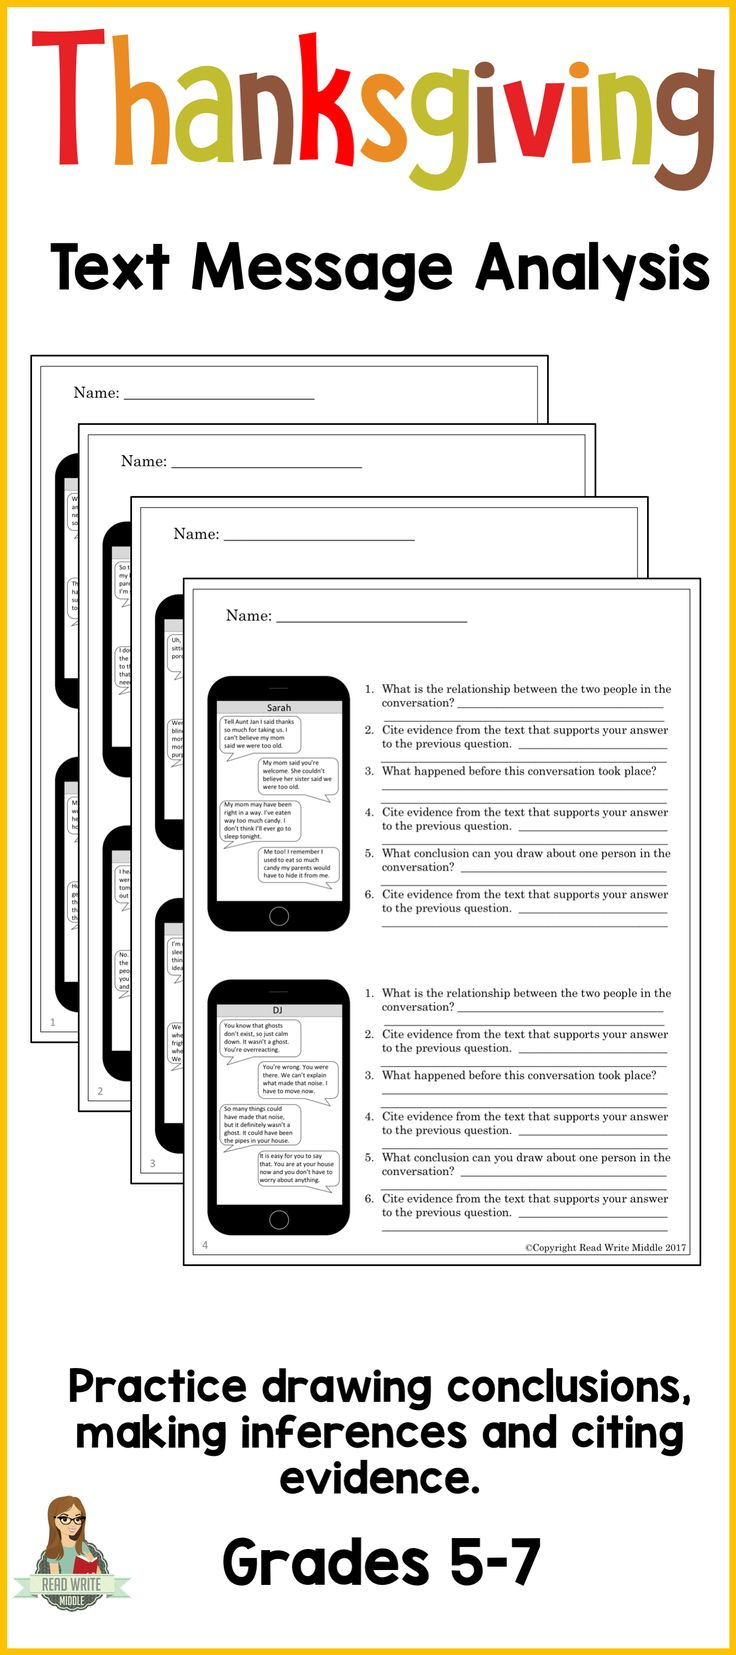 Workbooks inferencing worksheets grade 3 : Best 25+ Drawing conclusions ideas on Pinterest | Short thoughts ...